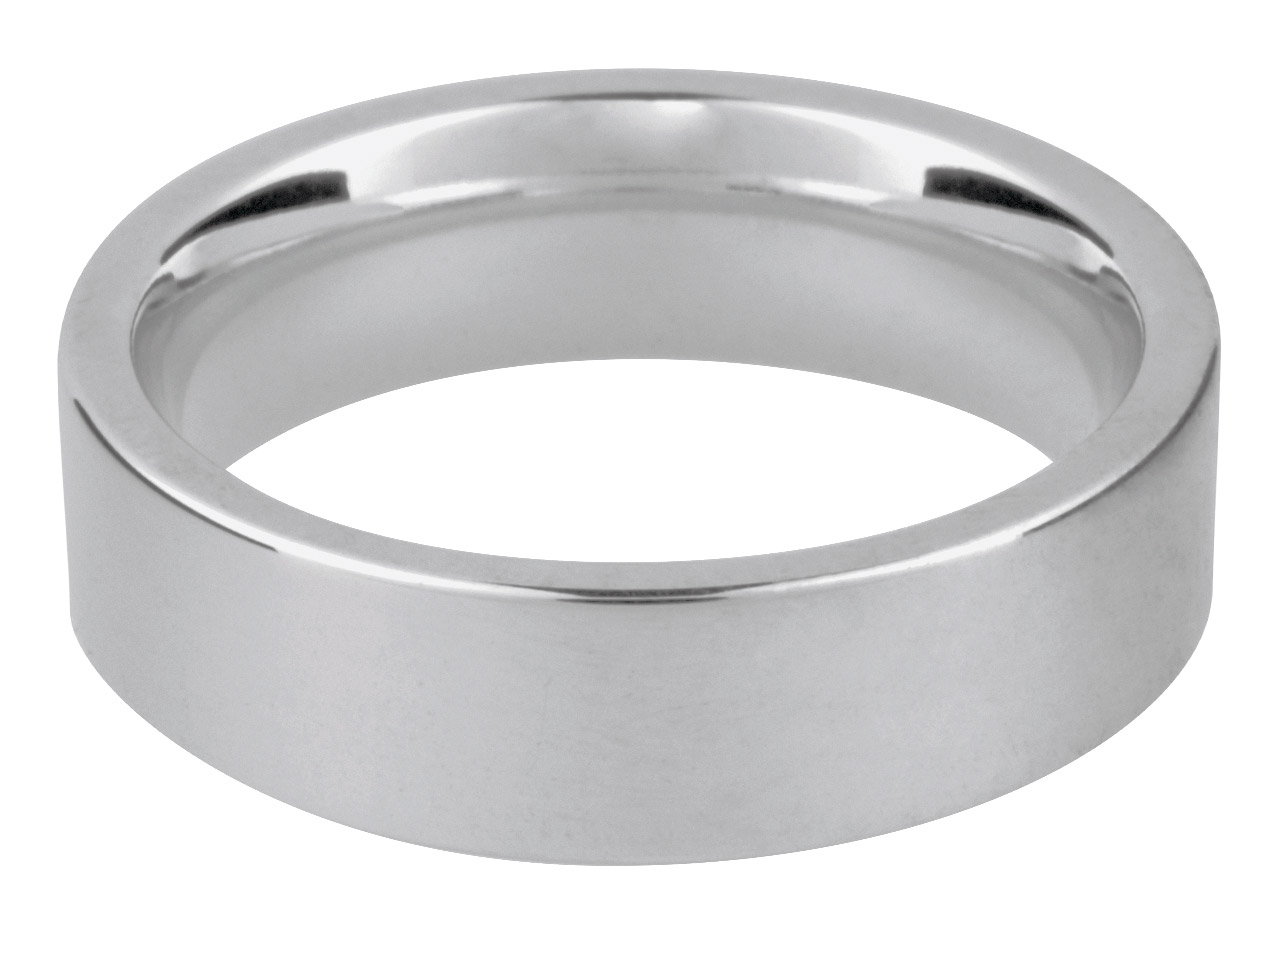 Platinum Easy Fit Wedding Ring     4.0mm R 10.7gms Heavy Weight       Hallmarked Wall Thickness 2.05mm